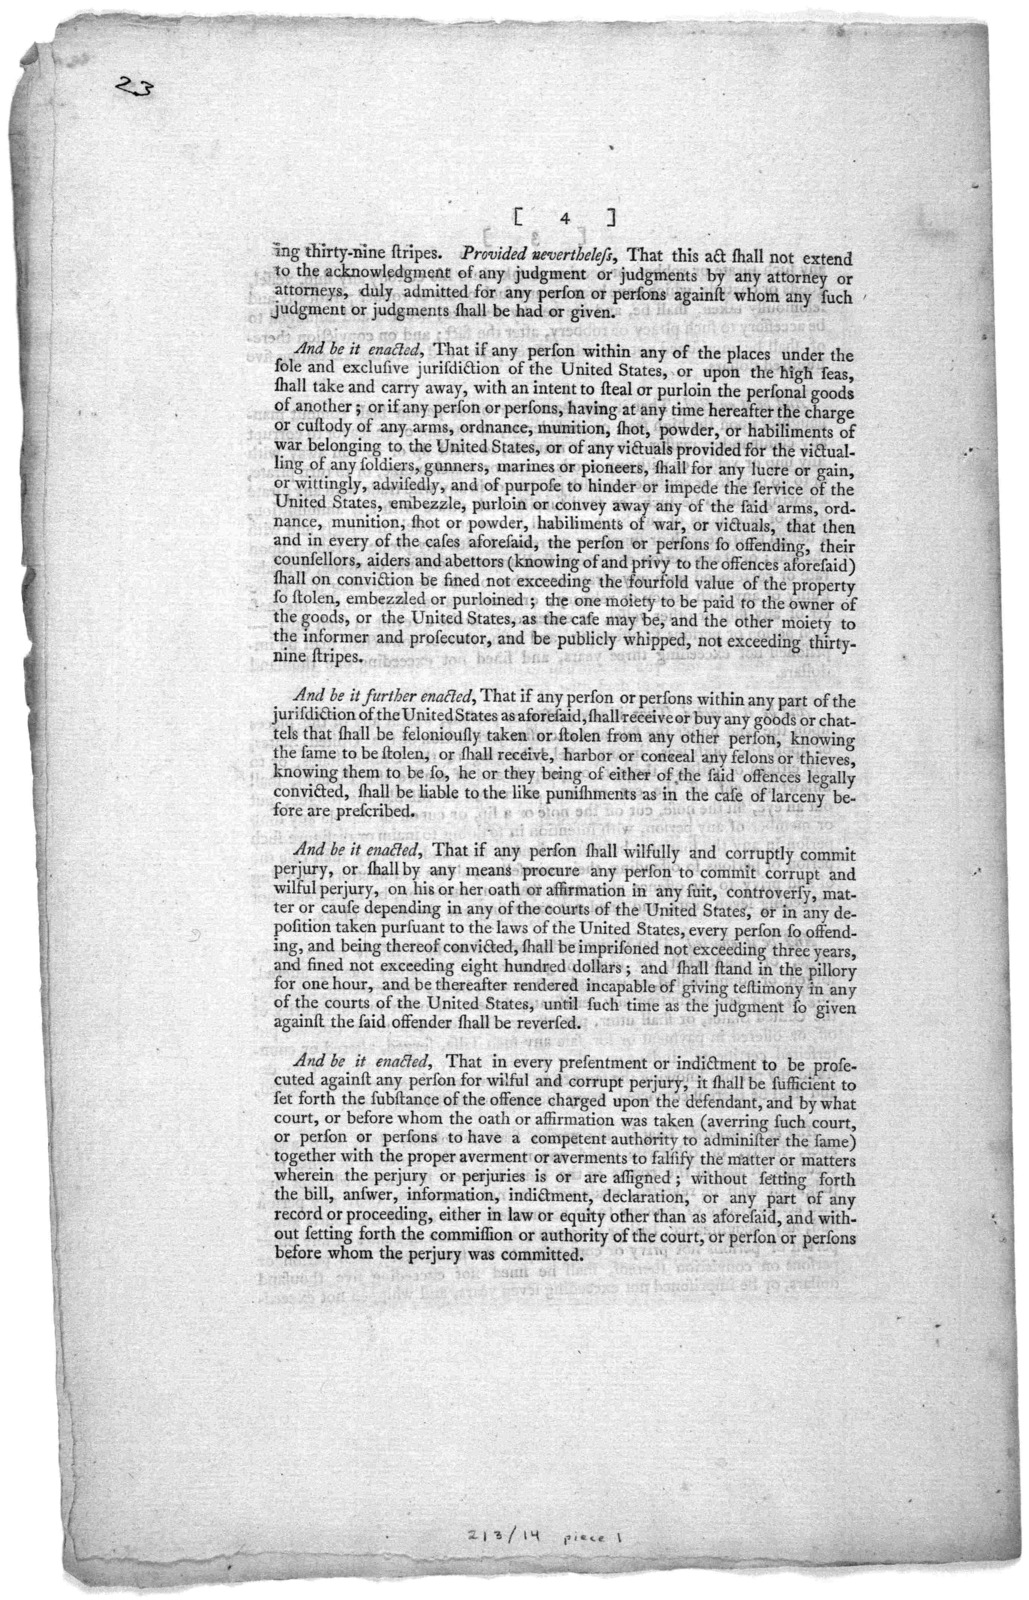 ... An act for the punishment of certain crimes against the United States. [New York] Printed by Francis Childs and John Swaine, [1790].